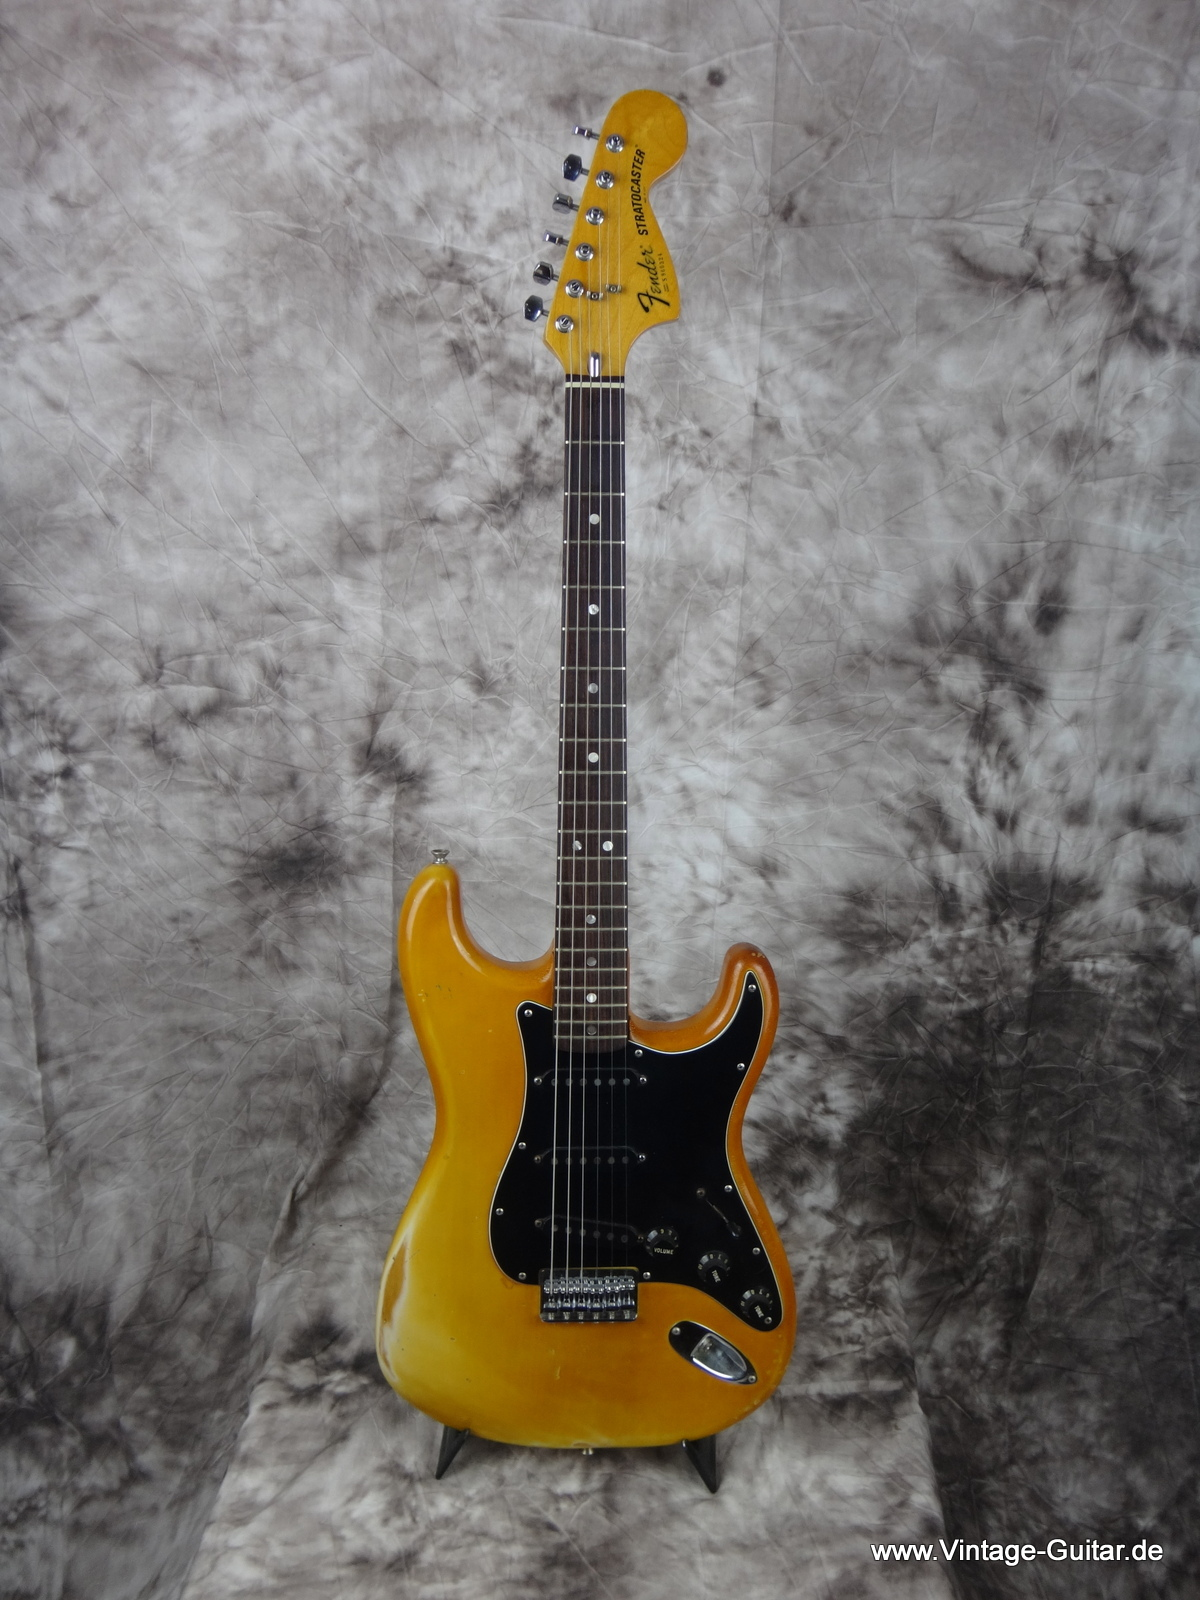 img/vintage/1717/Fender-Stratocaster_1979-olympic-white-yellowed-faded-001.jpg